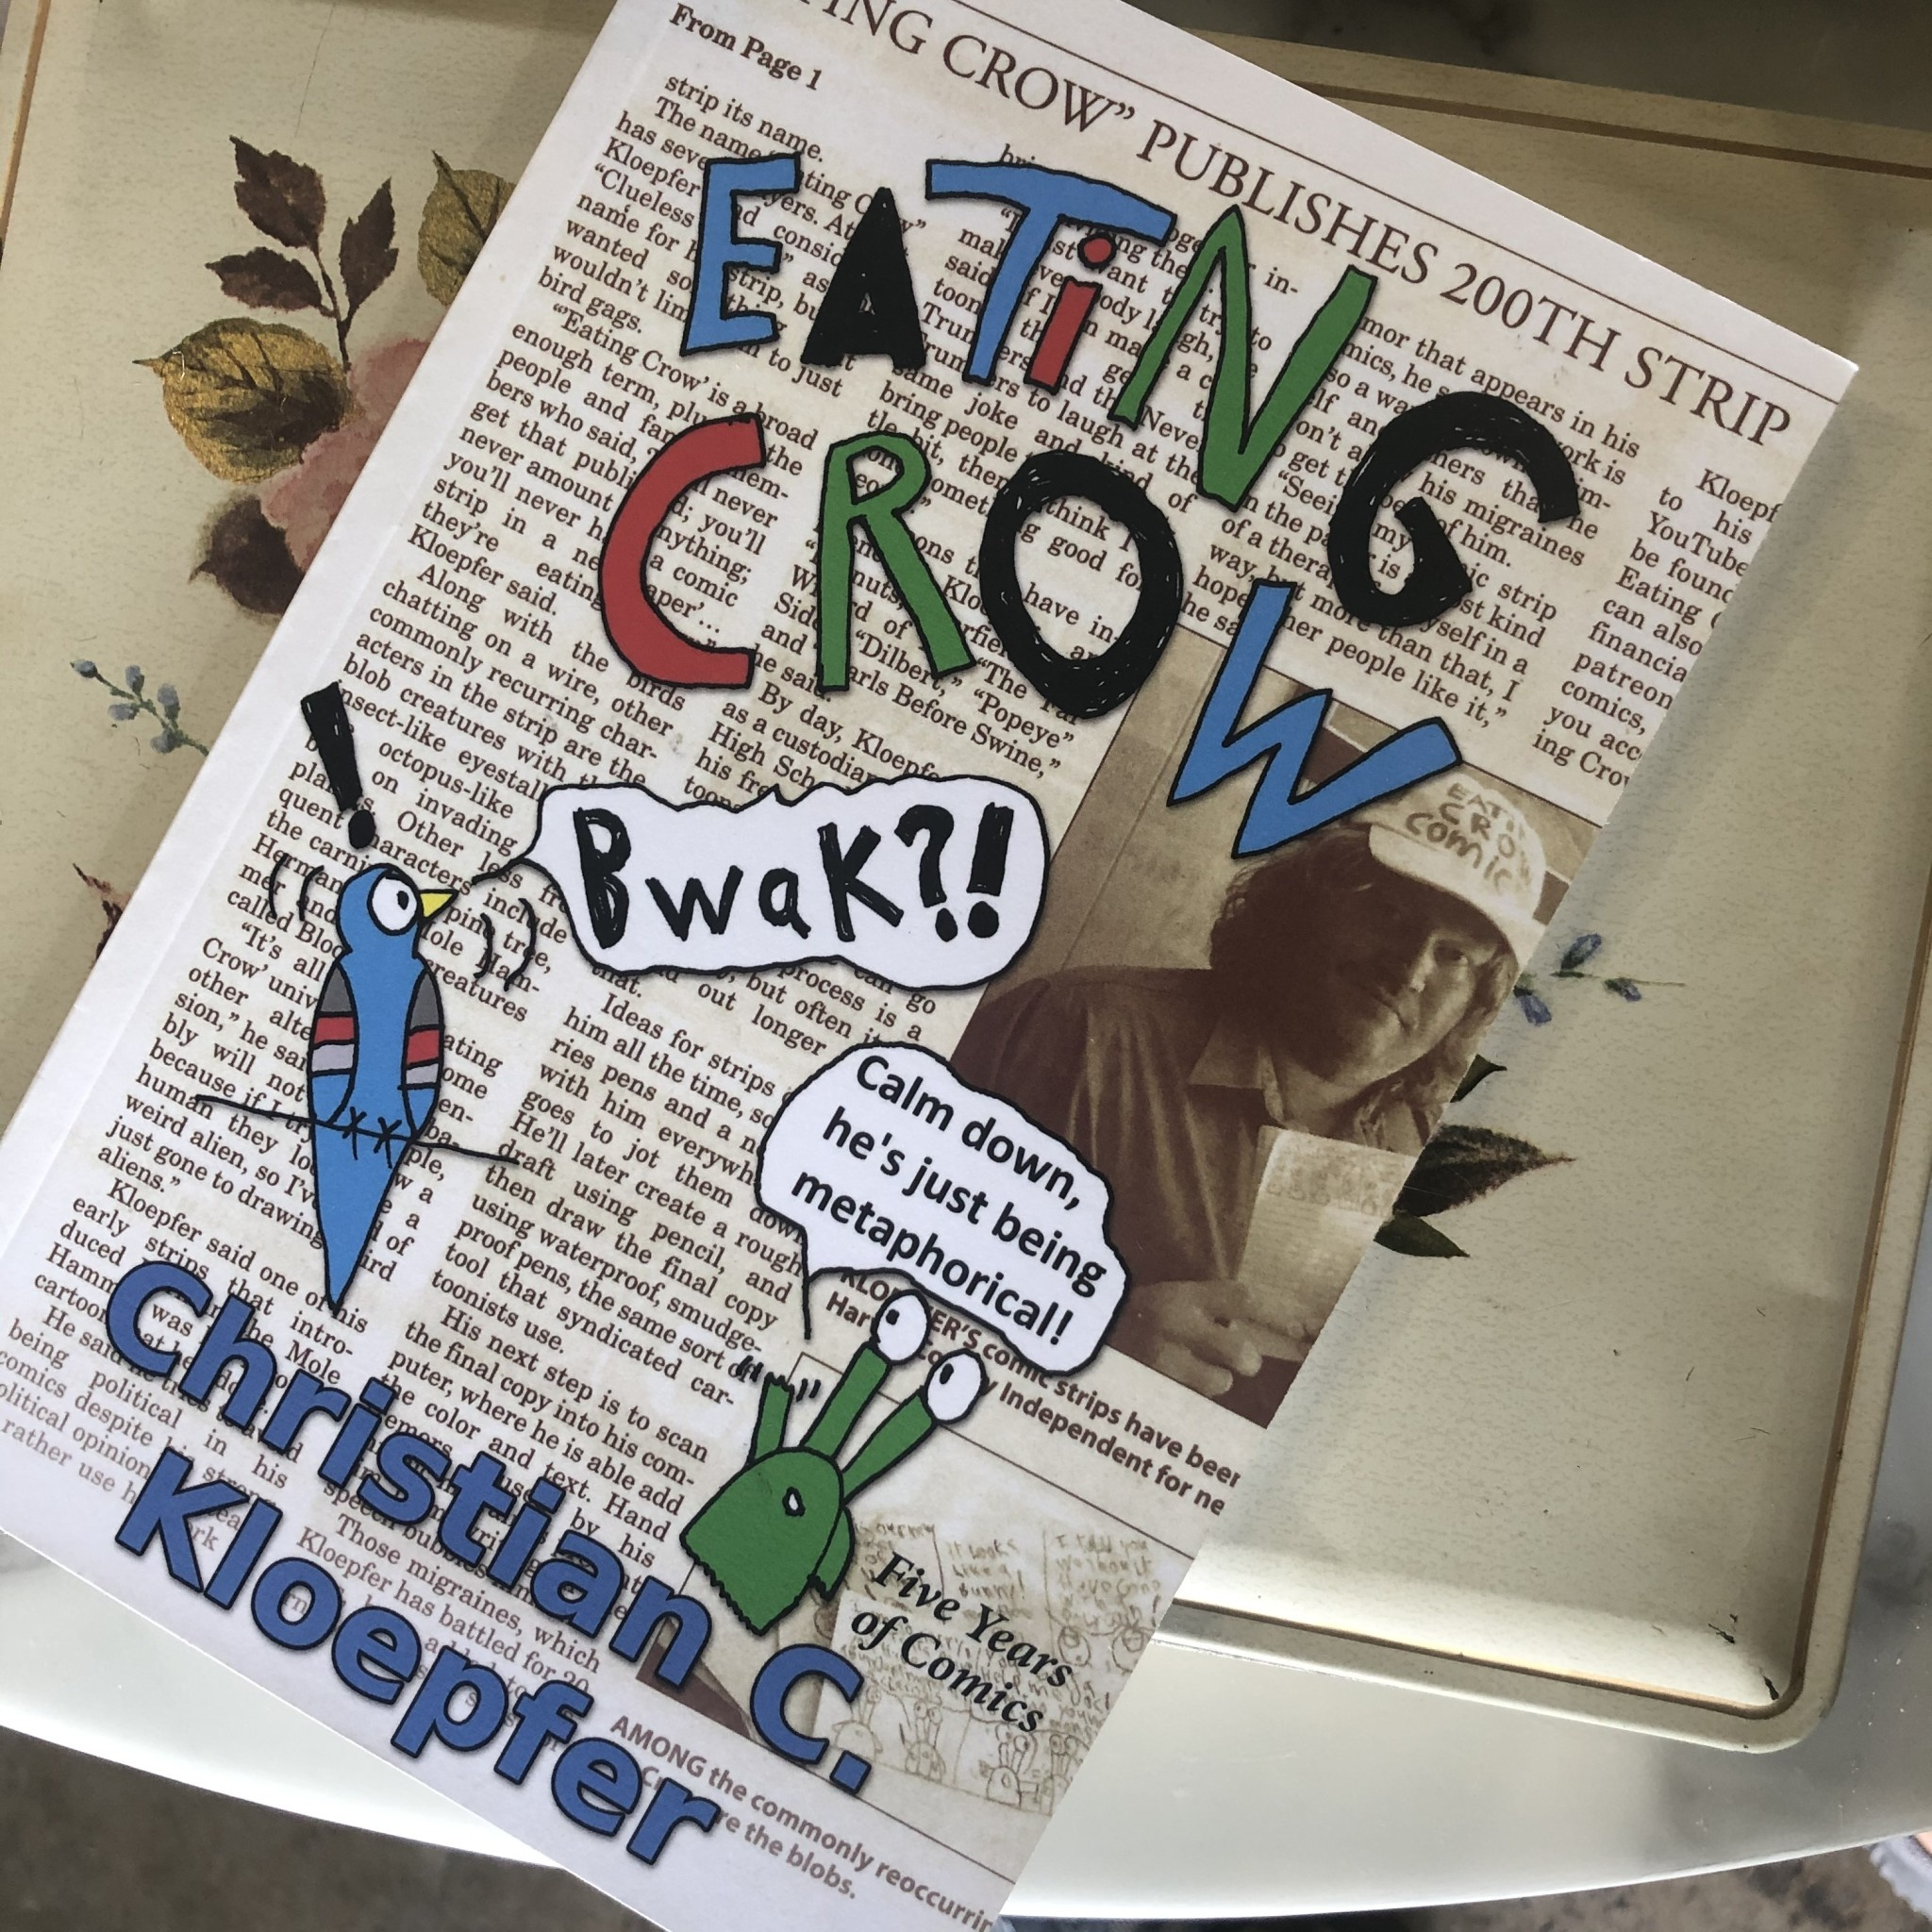 Christian Kloepfer Eating Crow Comic Strip Book